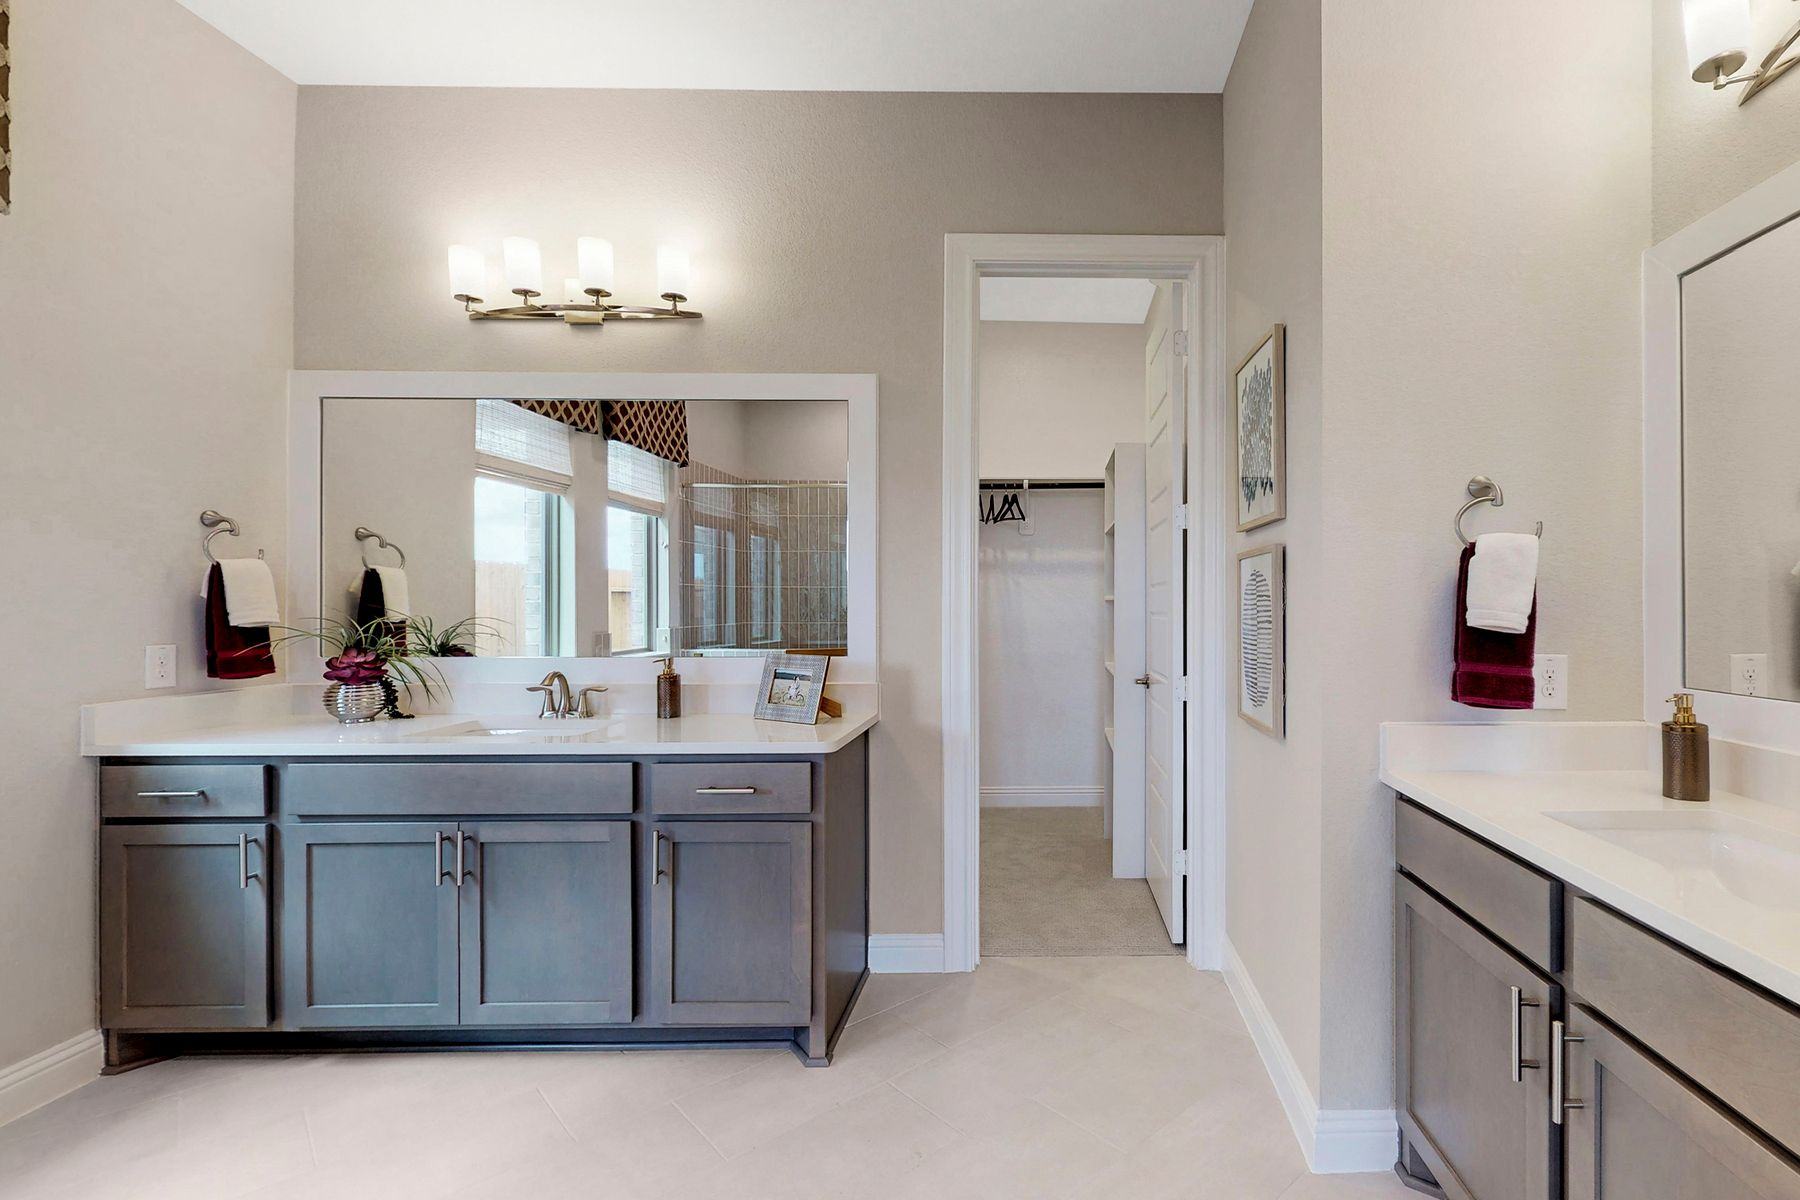 Bathroom featured in the Coronado By M/I Homes in Houston, TX